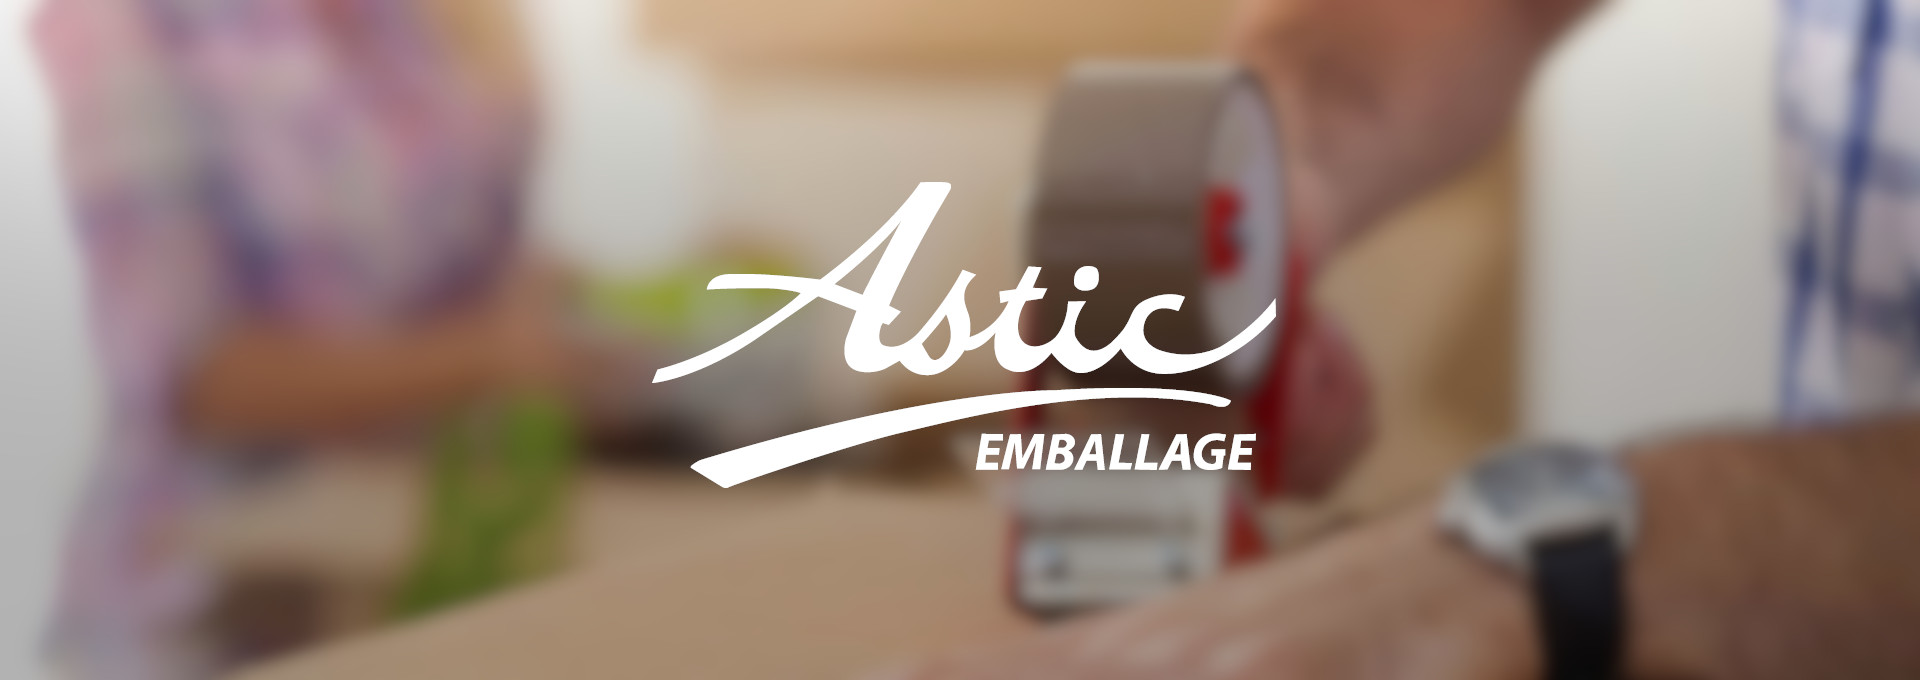 ASTIC Emballage